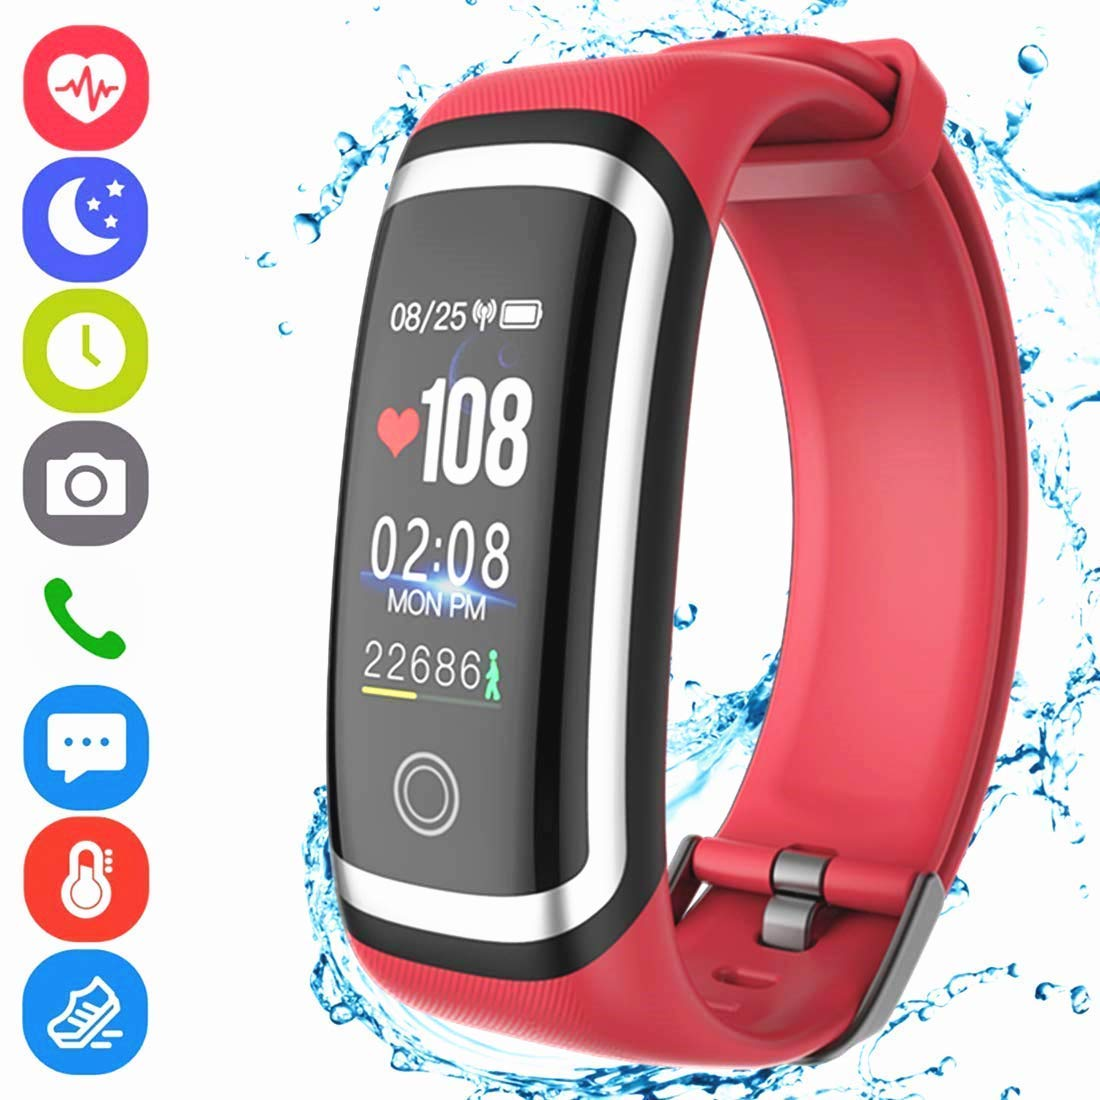 Fitness Tracker HR, Activity Tracker Smart Wristband with Pedometer Heart Rate Blood Pressure Monitor Sleep Monitor IP67 Waterproof Call SMS SNS Alert for Men Women Kids Compatible for Android IPhone Hocent